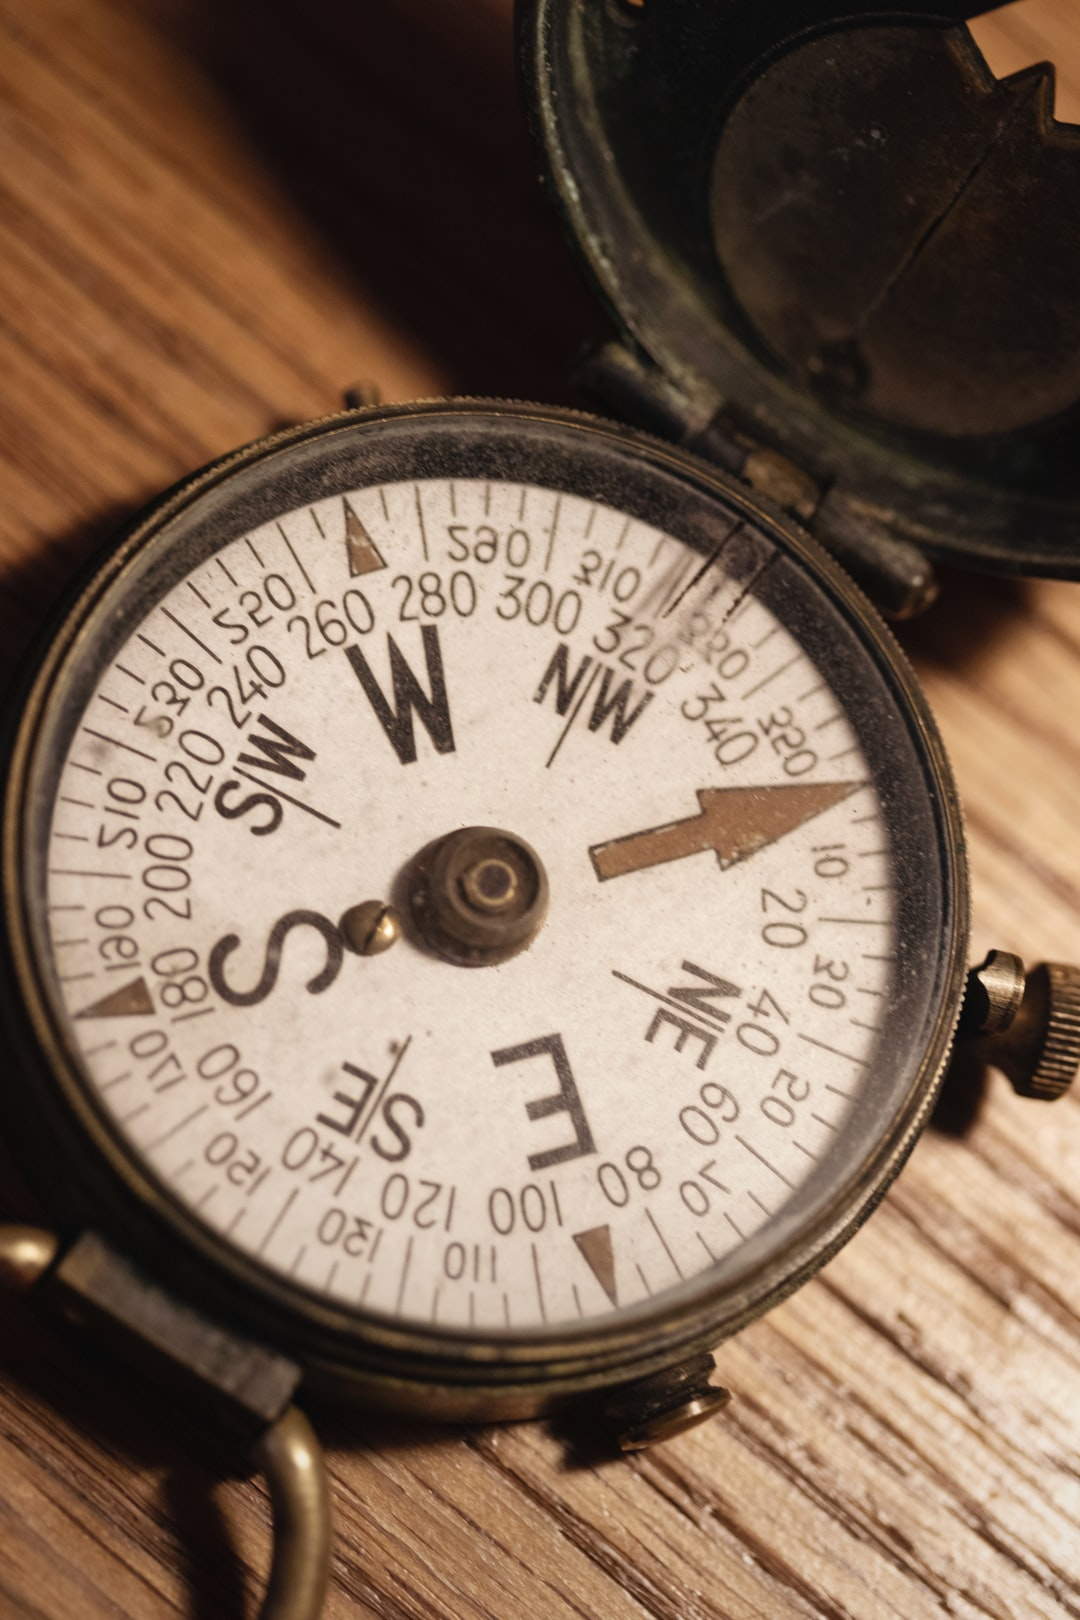 Antique U.S. Engineer Corps solid brass magnetic compass, manufactured in 1918. Compass dial is ivory and features large directional letters, markings and a gold arrow pointing true north.